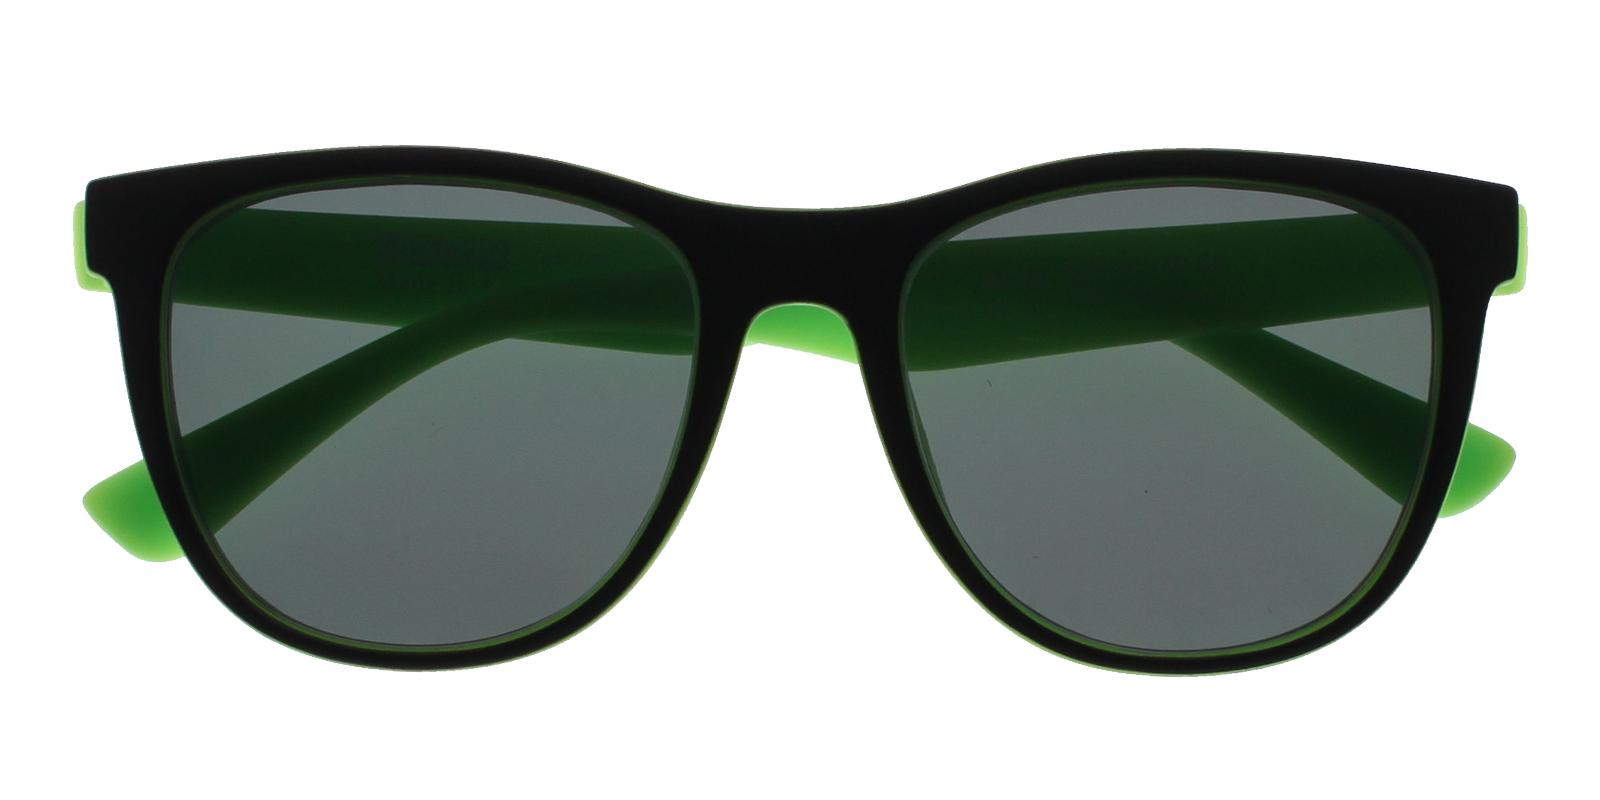 Hallstead Green TR Sunglasses , UniversalBridgeFit Frames from ABBE Glasses